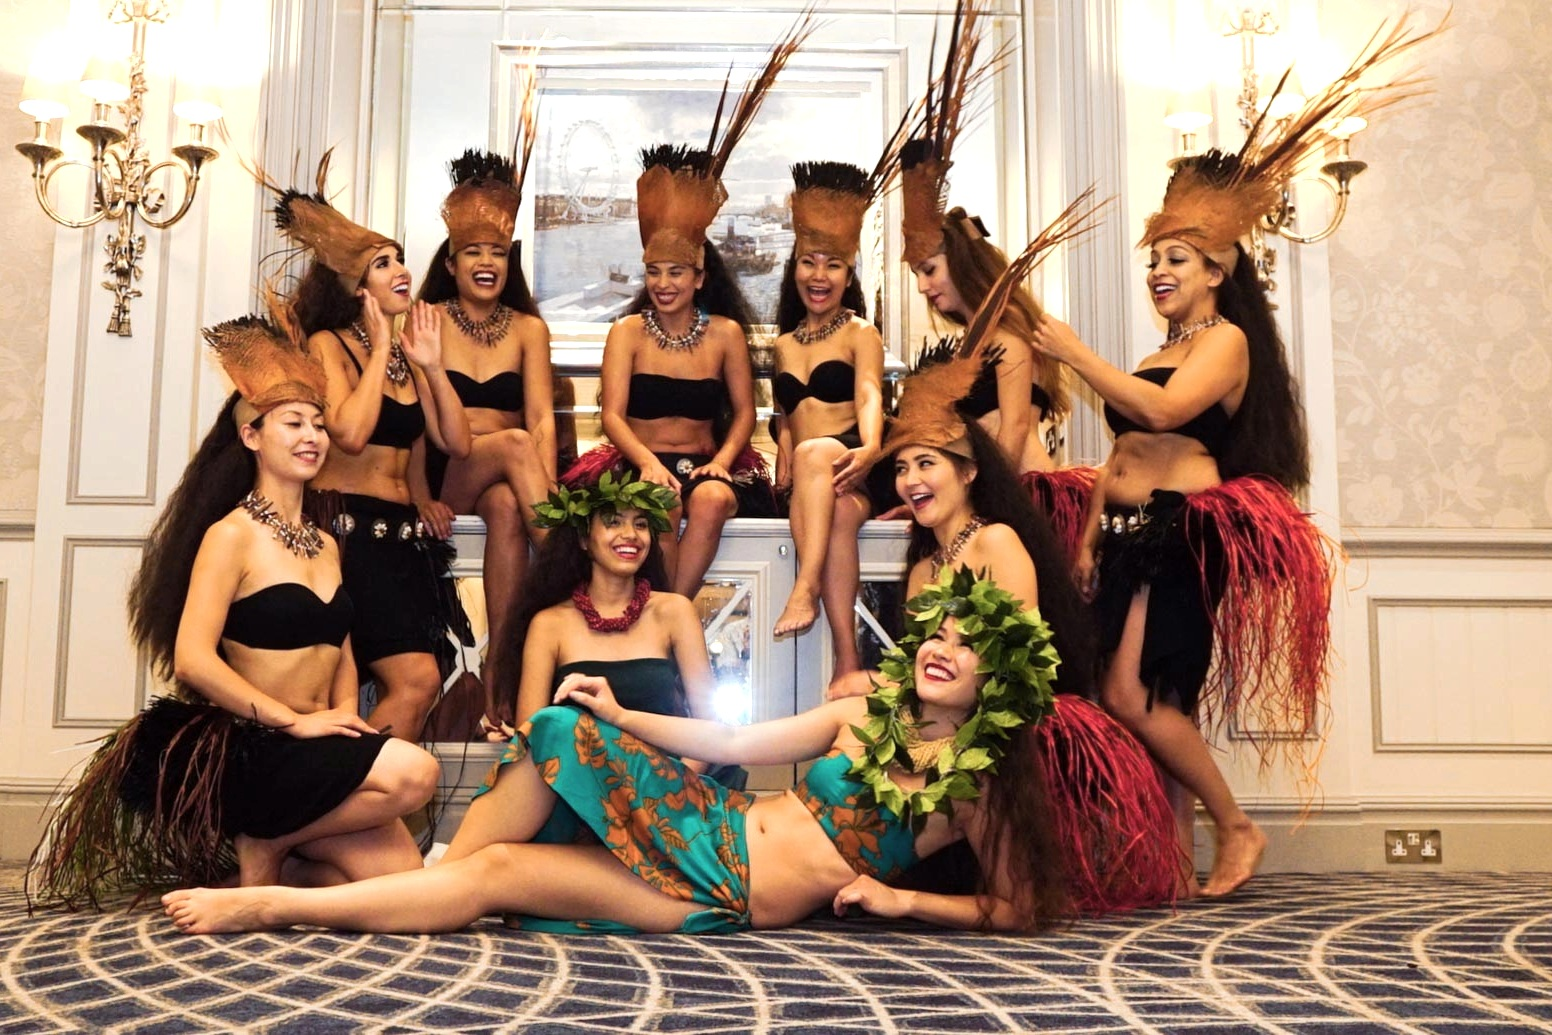 LSHO DANCERS - Our award winning dancers have represented the UK in several international dance competitions and shows, including in Tahiti. They are a group of strong, committed dancers who always bring a high standard of authentic Polynesian dance experiences. Their relationships extend beyond the studio and they are more than just a dance group- they are 'ohana. All are welcome to be a part of our community.